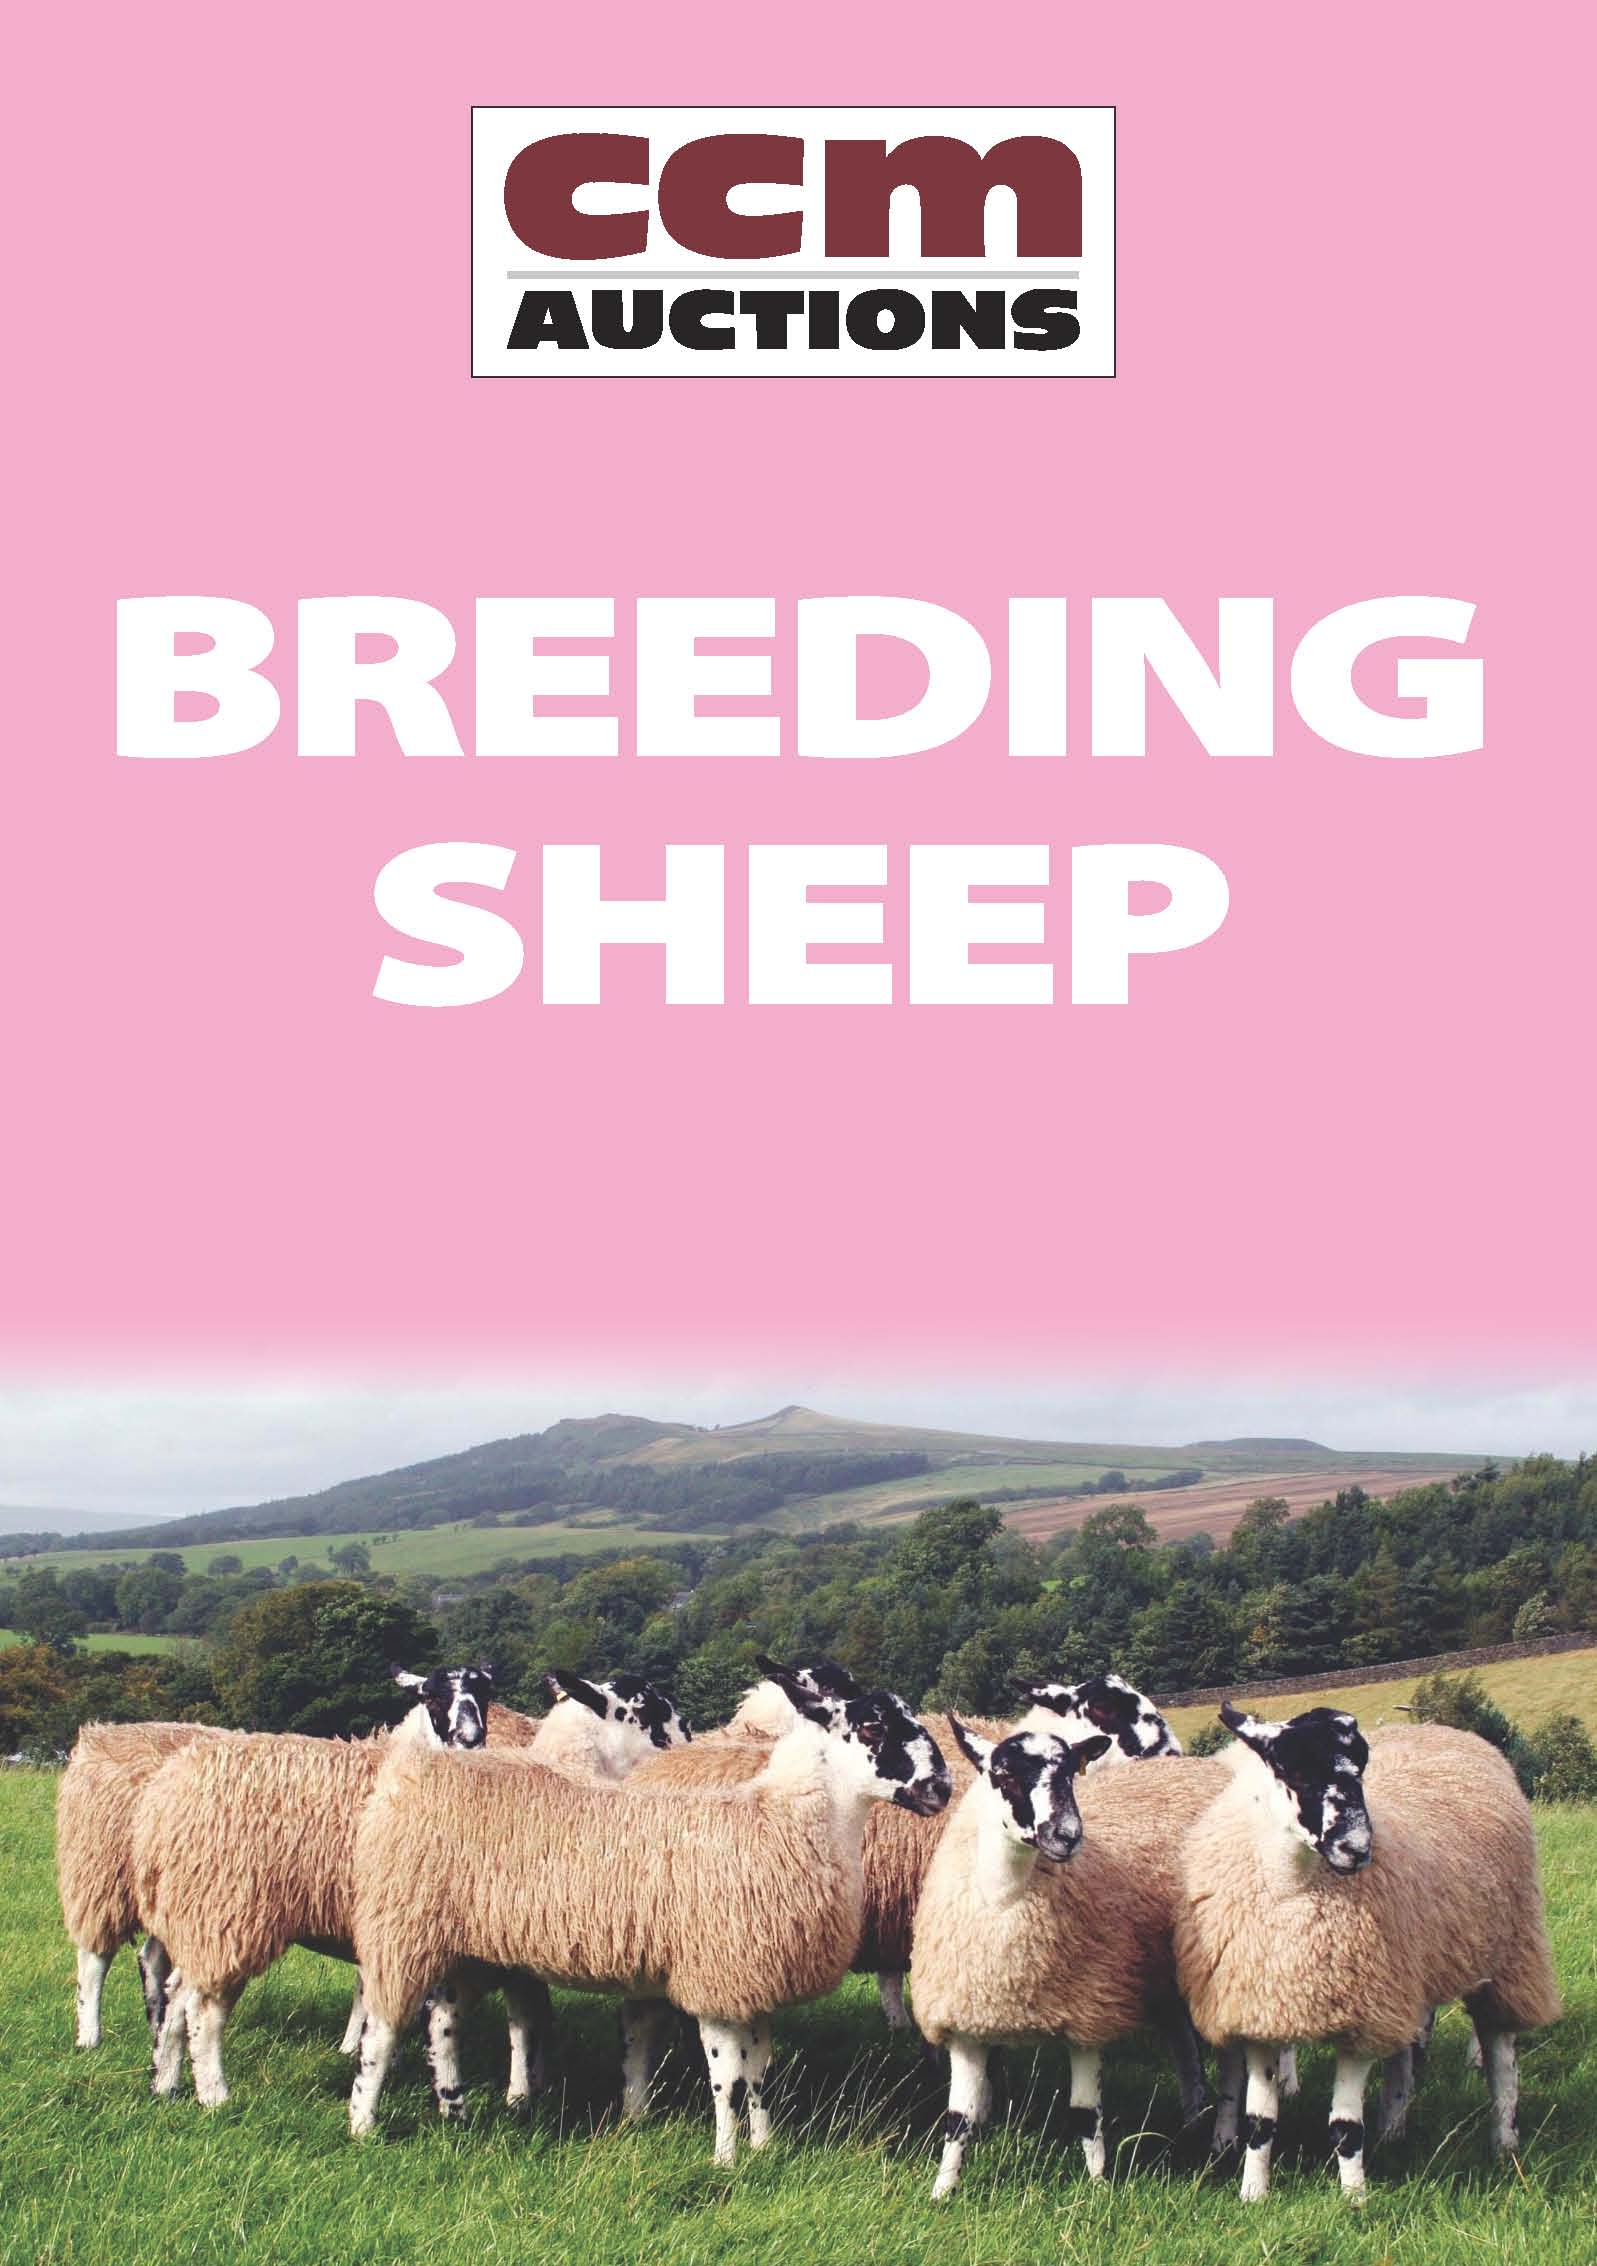 TUESDAY 9TH SEPTEMBER - MULE GIMMER LAMBS PRESS REPORT